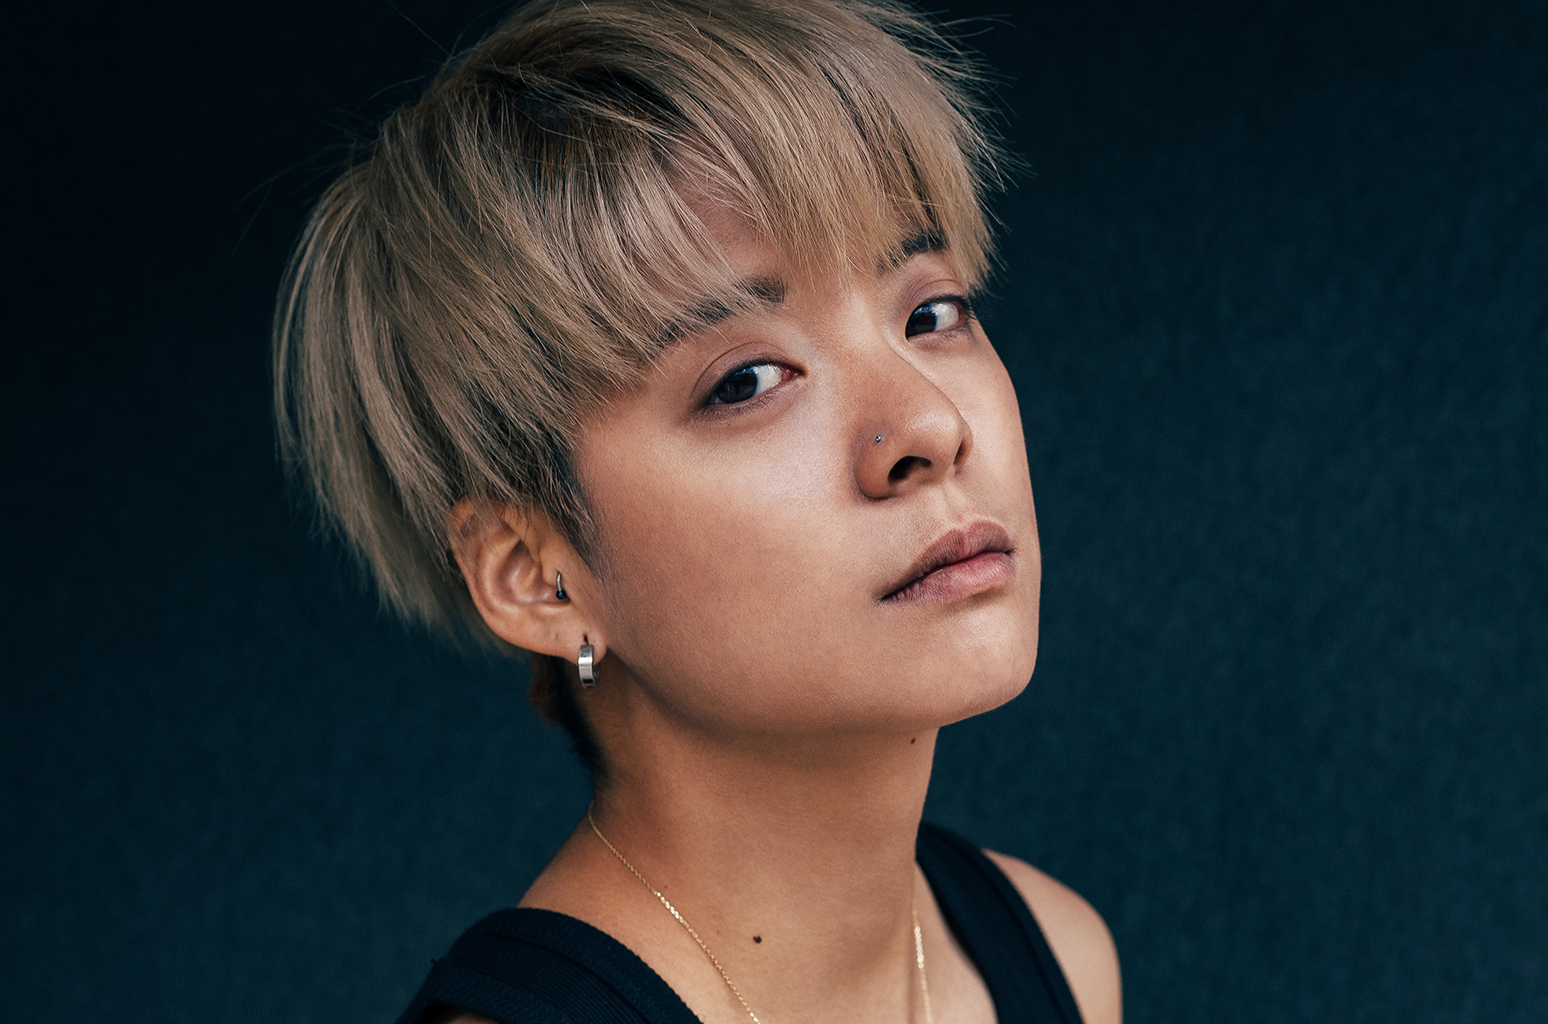 Amber Apologizes After Saying Racist Comments Against Blacks Skin, Netizens Still Angry